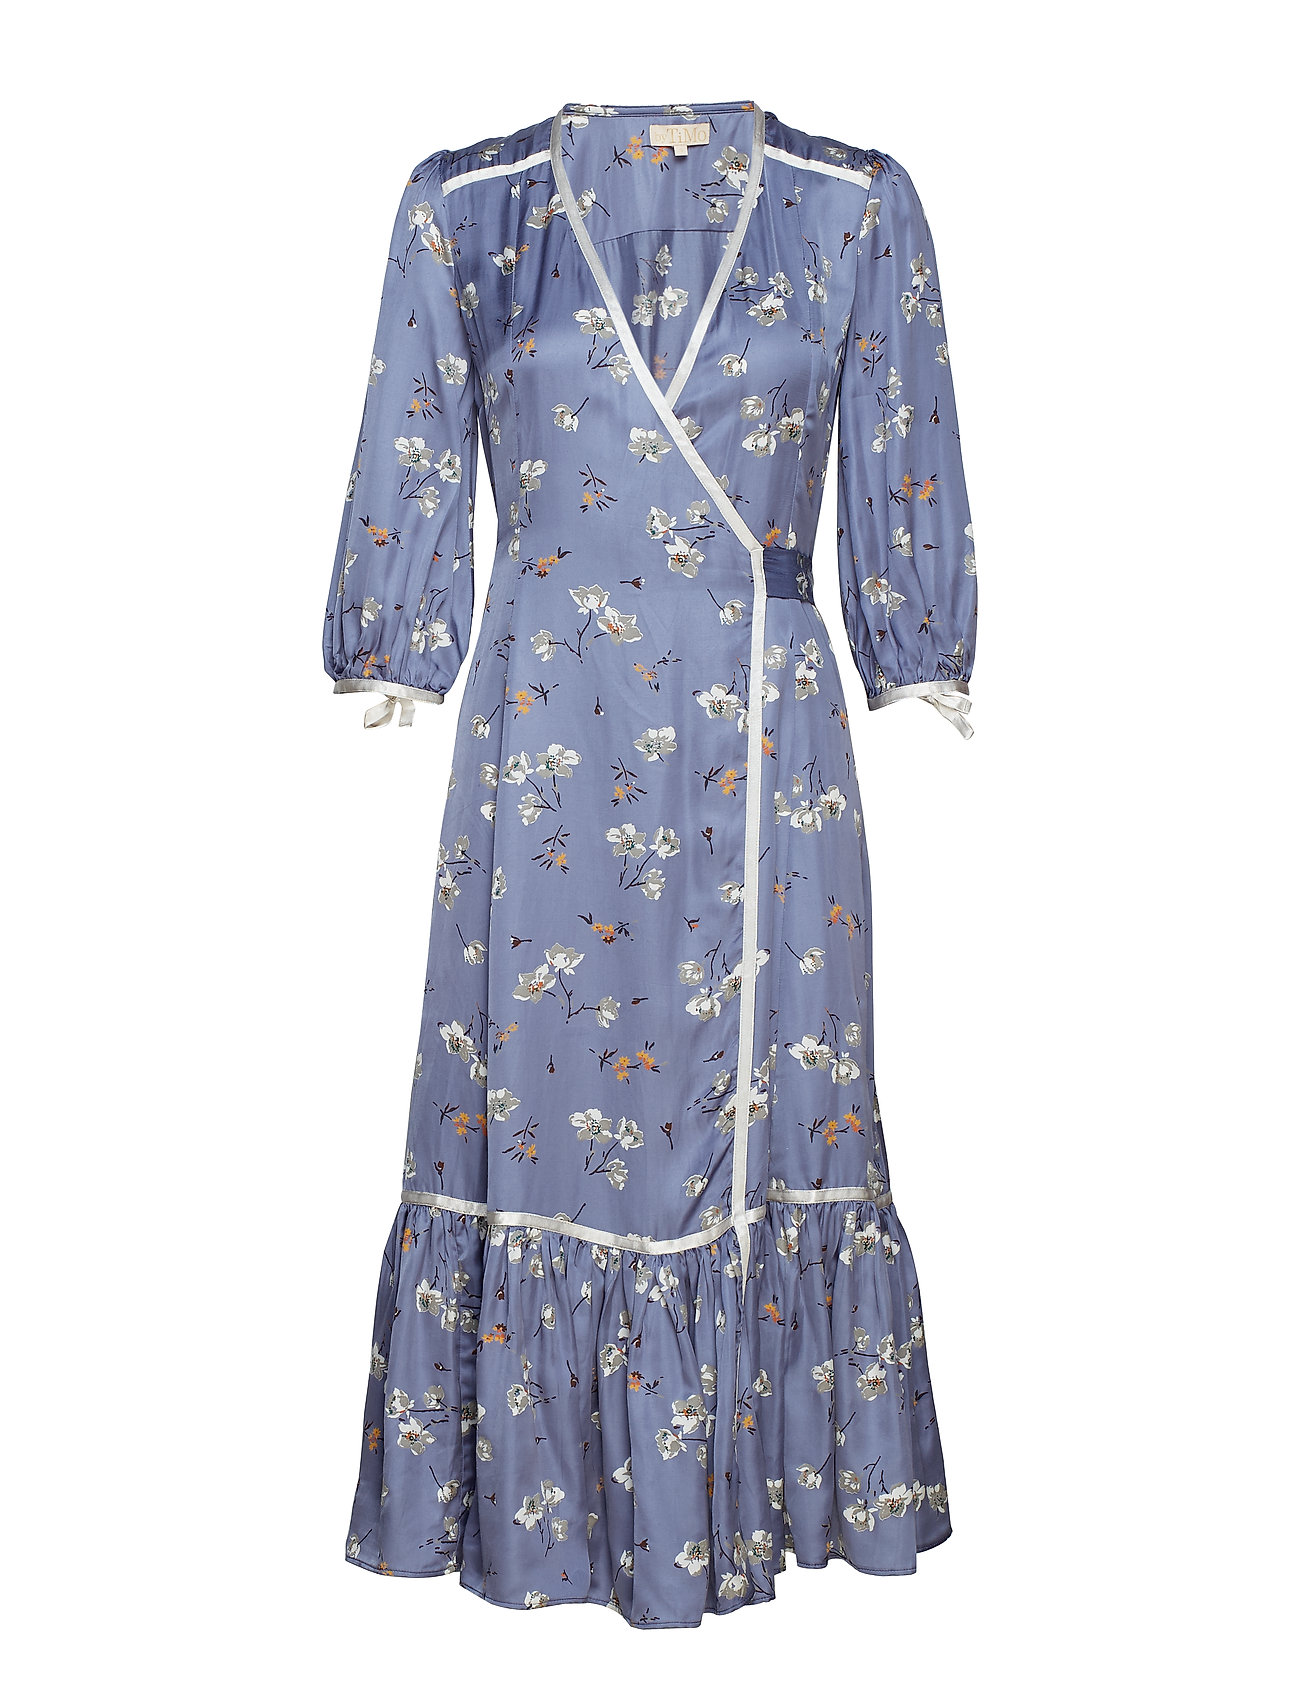 by Ti Mo Contrast Wrap Dress - 798 NOVELTY